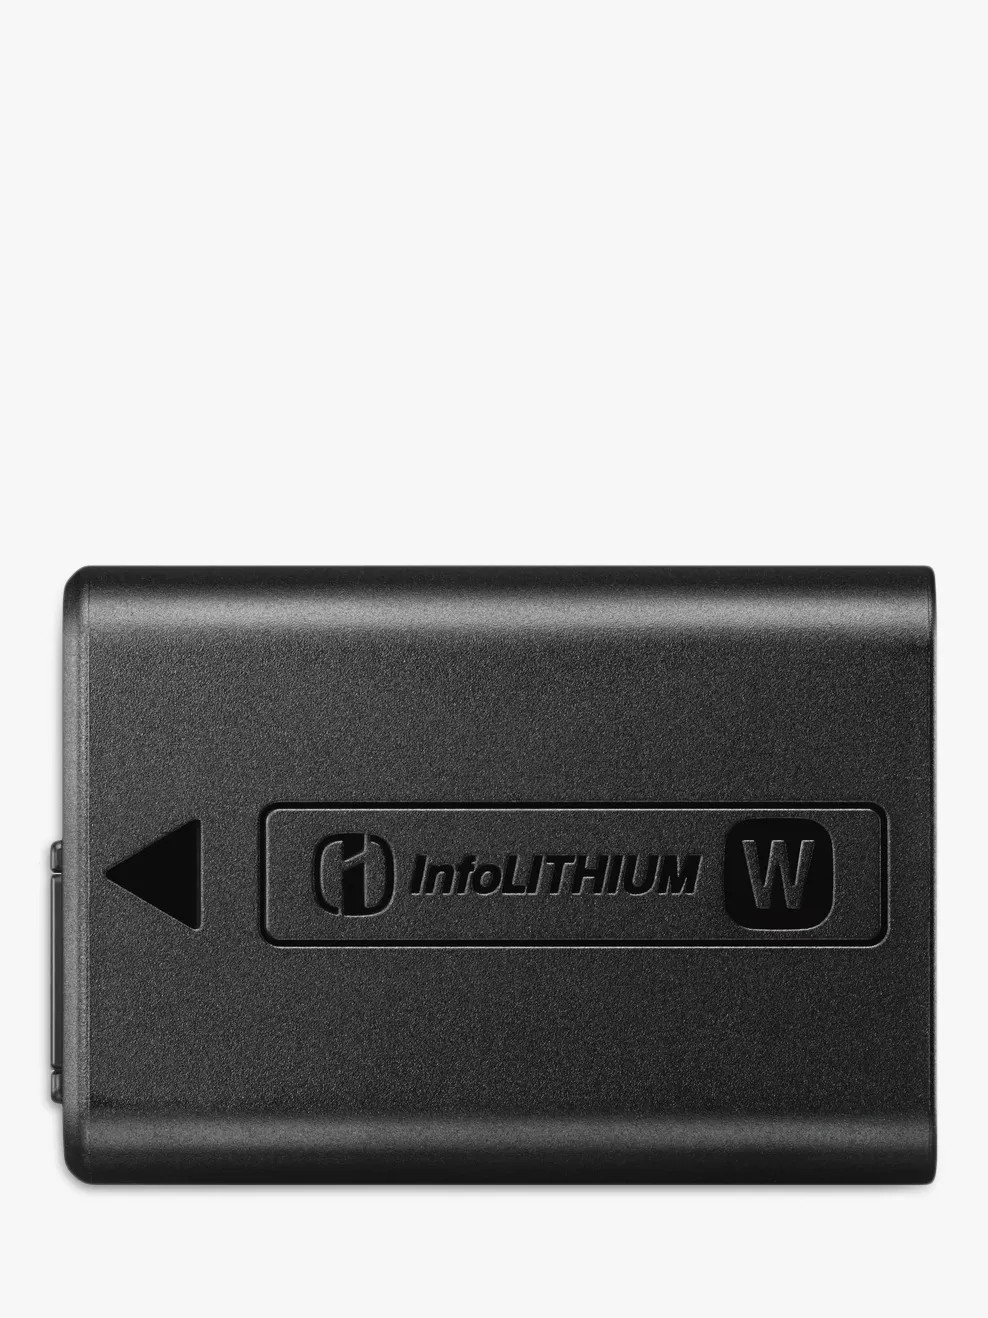 NP FW50 W series Rechargeable Battery